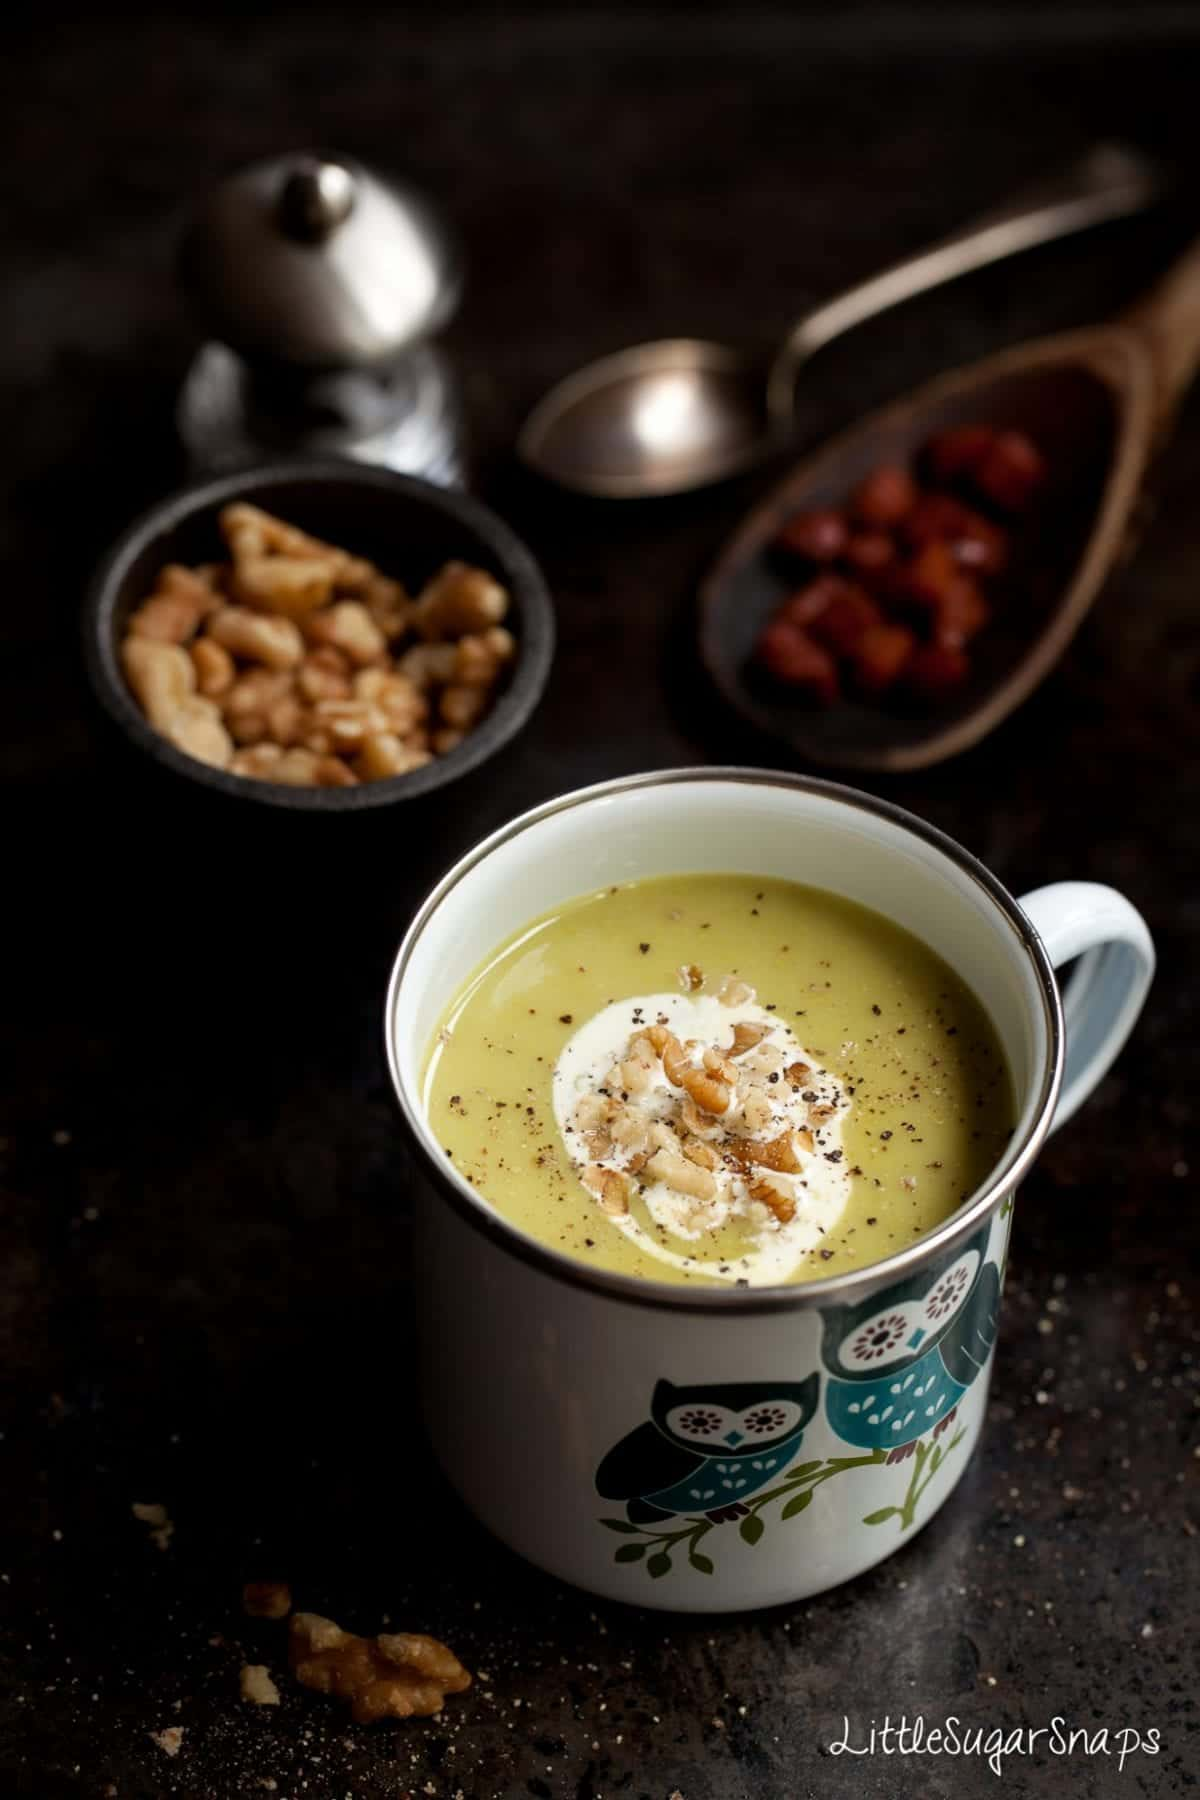 spinach and stilton soup in an owl design enamel mug with cream and walnut garnish on top. bowls of walnuts and chorizo out of focus behind.